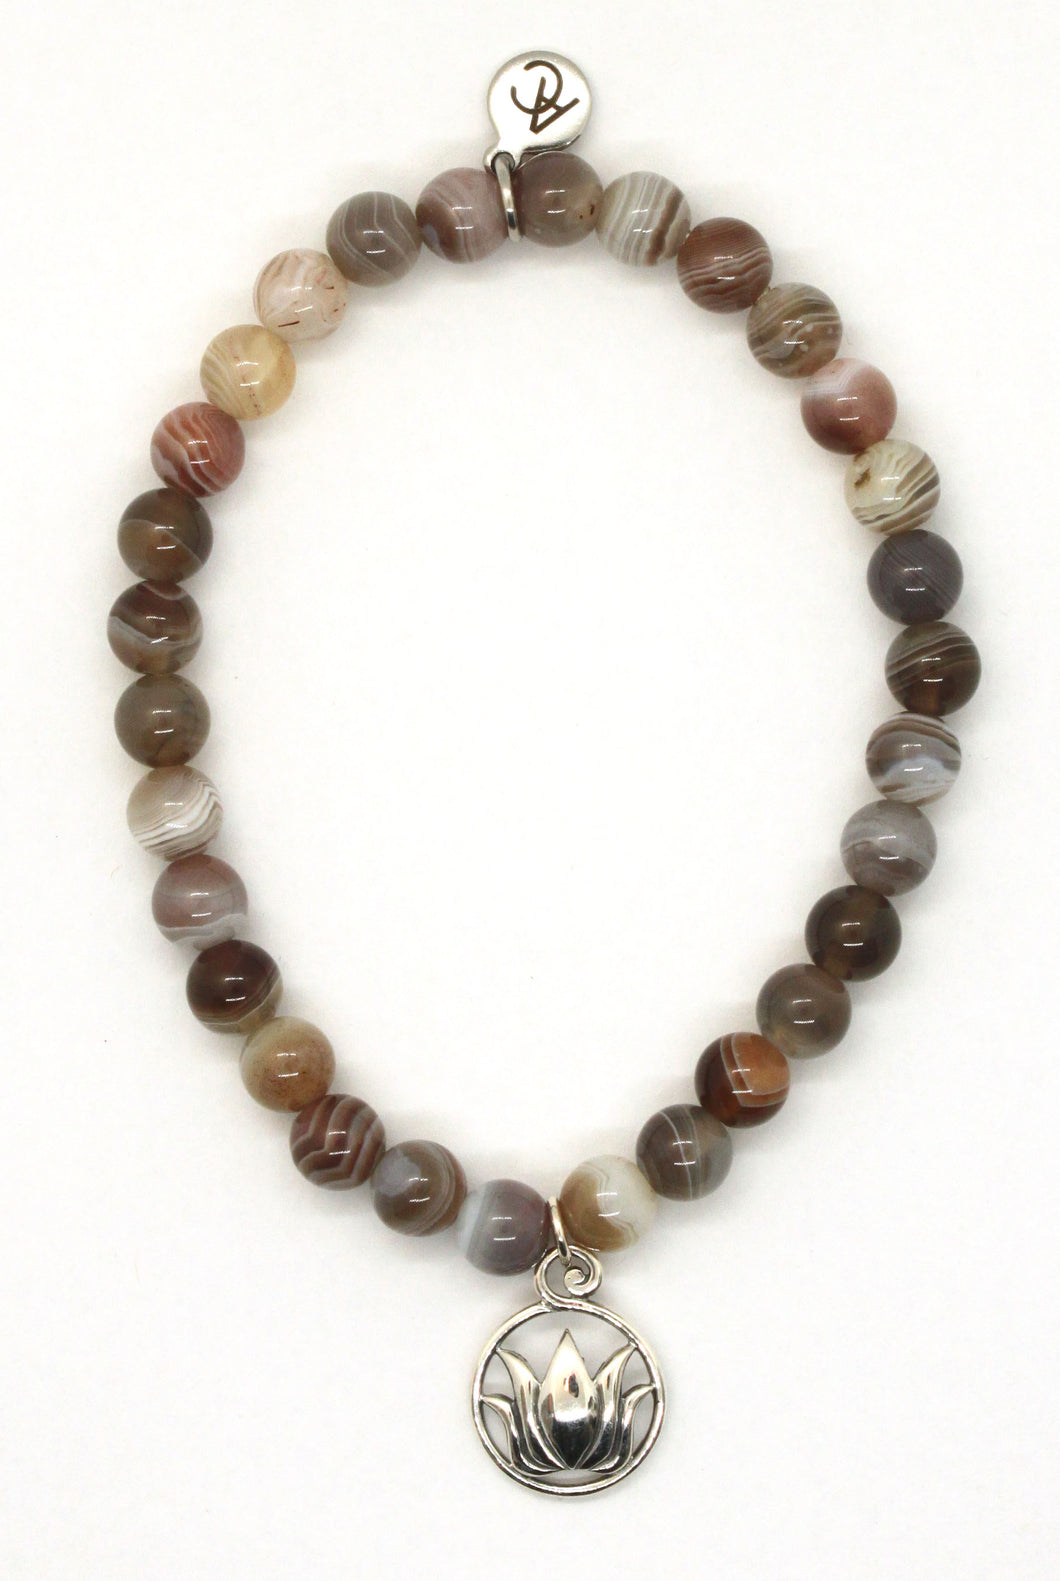 Botswana Agate Stone Bracelet with Sterling Silver Lotus Charm